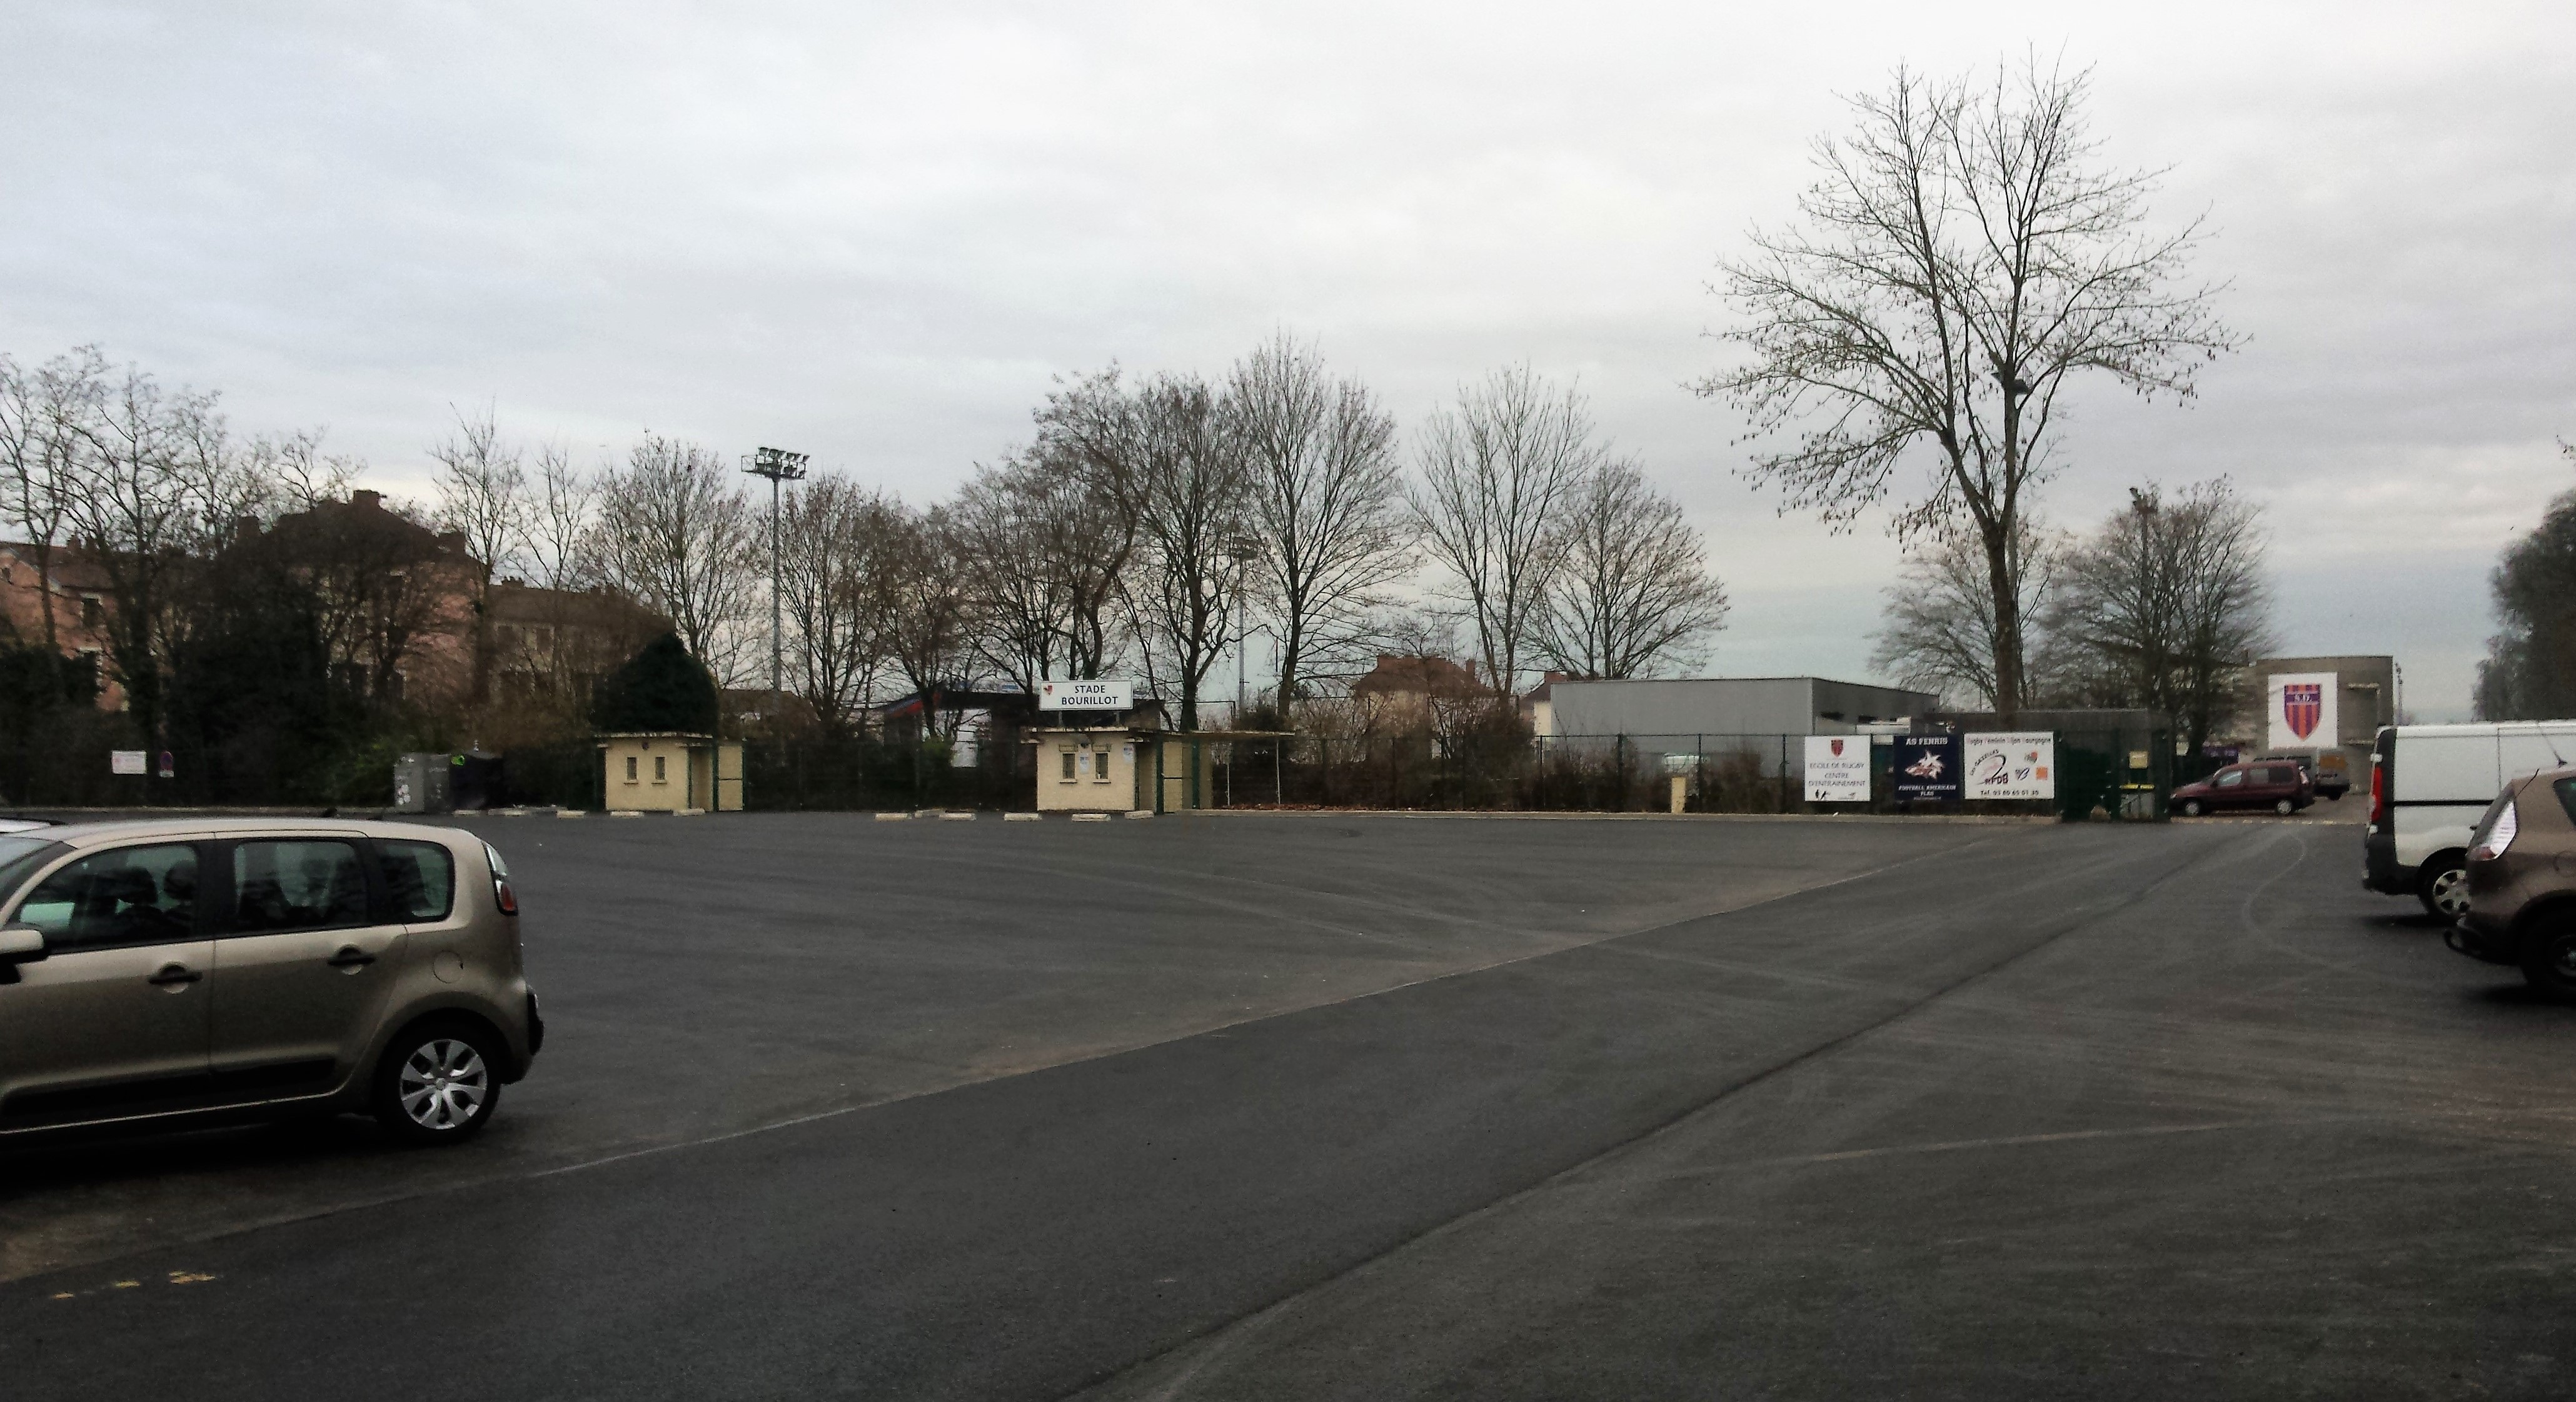 bourillot-parking-12-2016-3